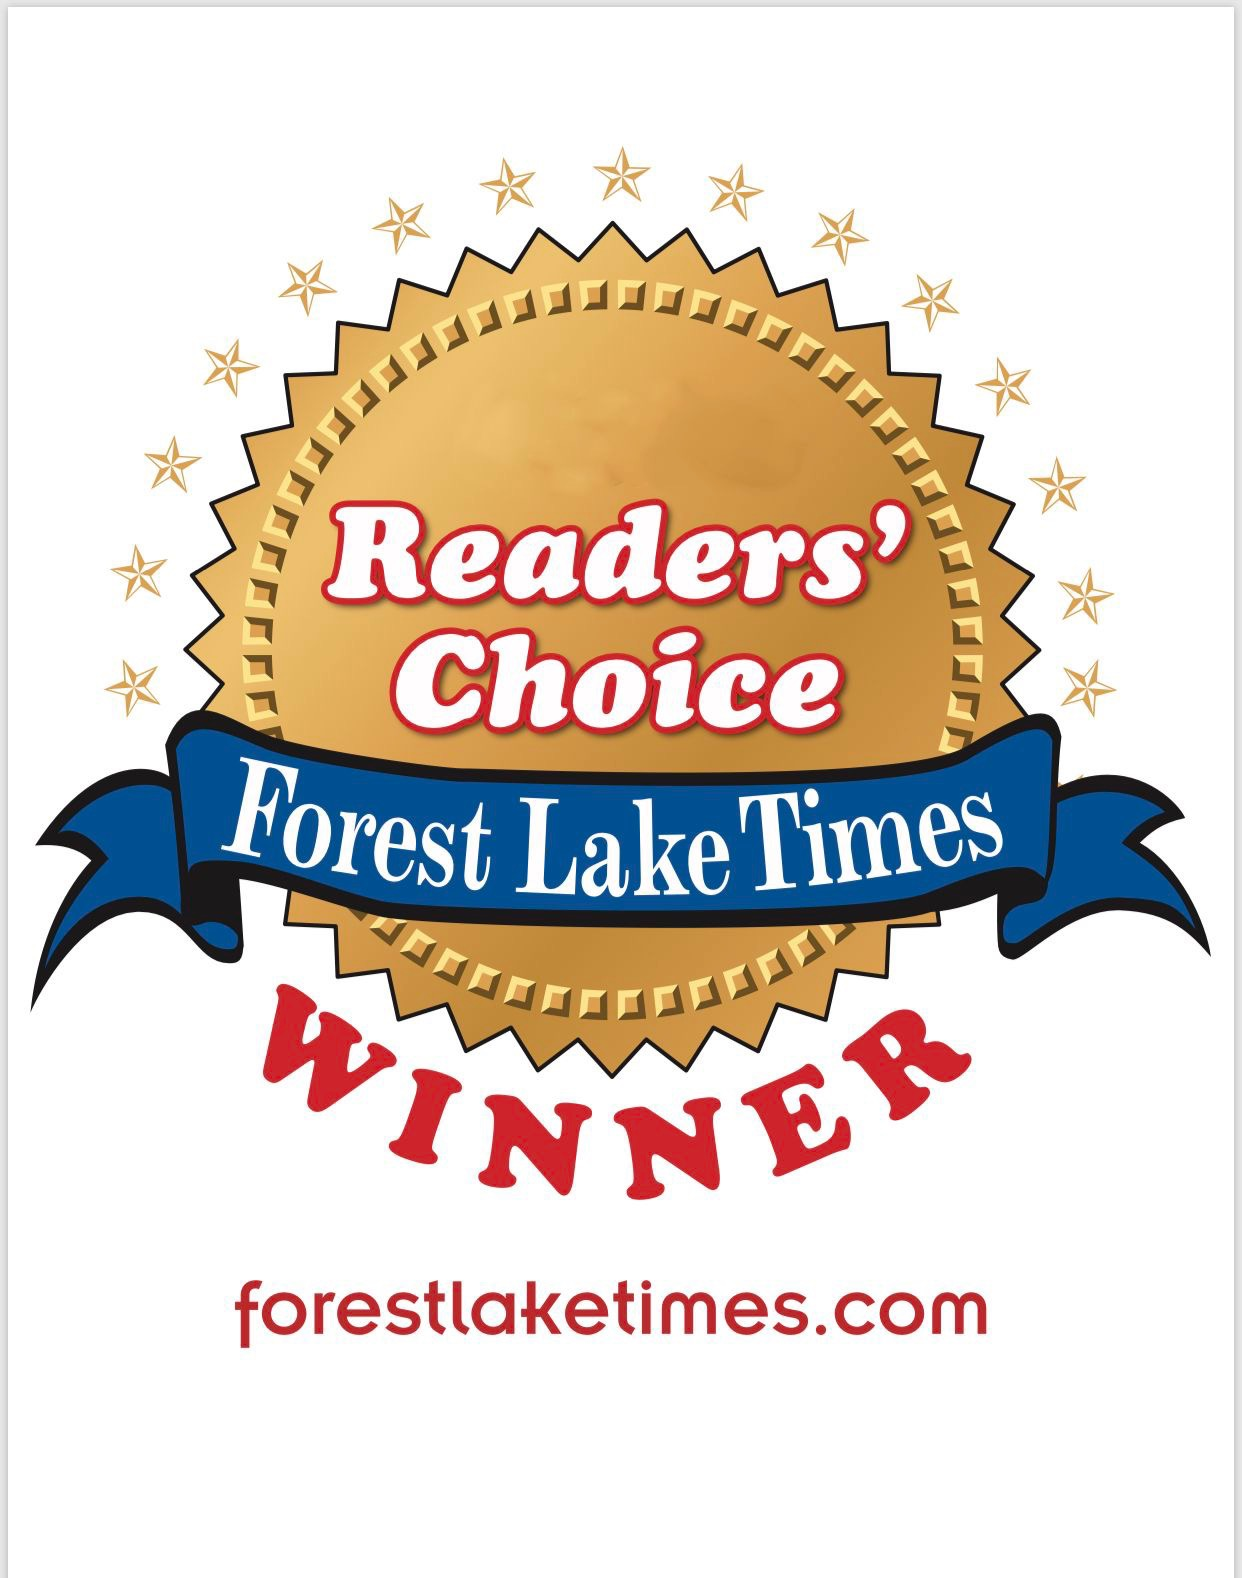 VOTED BEST DANCE STUDIO!   Dance Tech Studios has been voted Forest Lake Times Readers' Choice for Best Dance Studio every year since 2015. Thank you to the Forest Lake community for your love and support!